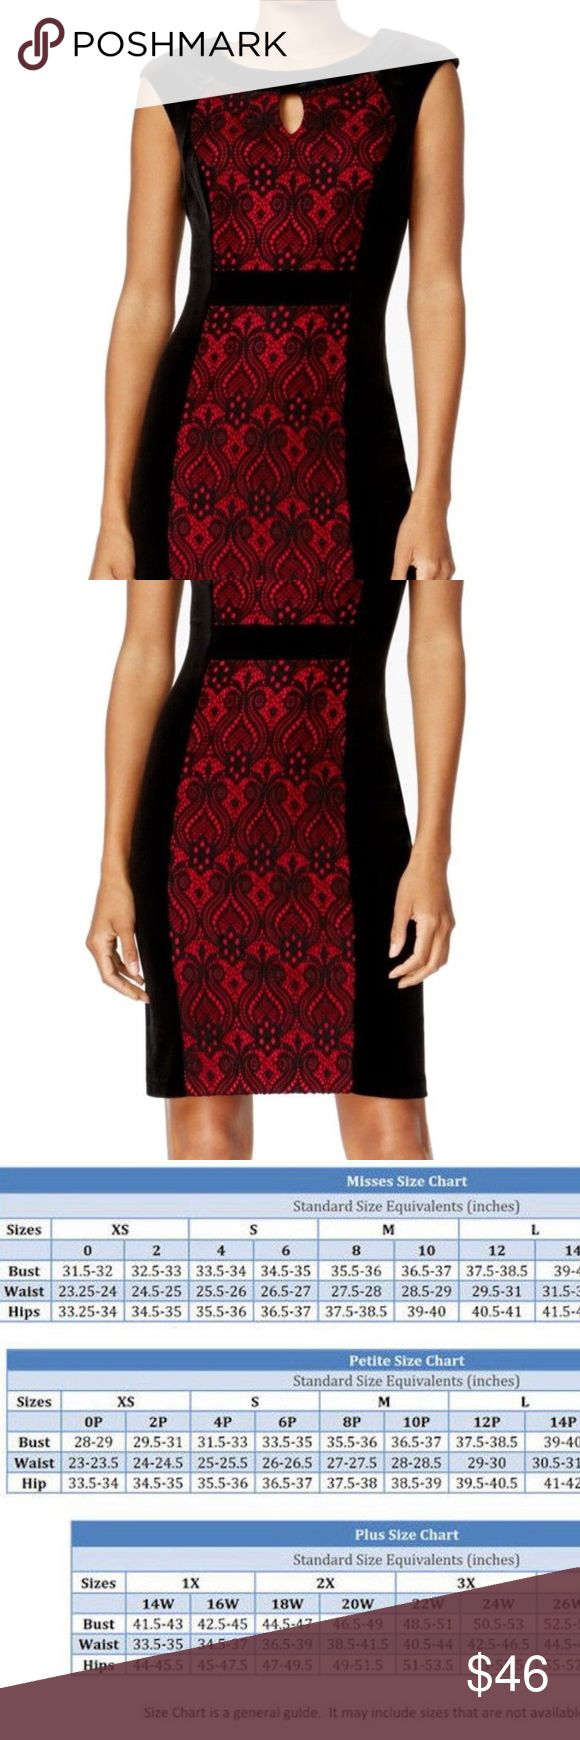 CONNECTED APPAREL NEW BLACK RED 4P PETITE DRESS CONNECTED APPAREL NEW BLACK RED 4P PETITE CROCHET LACE SHEATH DRESS         RETAIL PRICE  $79.00      Brand:Connected Apparel Condition:New with tags   Size (Women's): 4P Sleeve Style: Cap Sleeve Occasion: Cocktail Style: Sheath Dress Length: Above Knee, Mini Material: Nylon Zipper: Back Zipper   100% Authentic Connected Apparel® 88% Nylon 12% Spandex Connected Apparel Dresses Midi